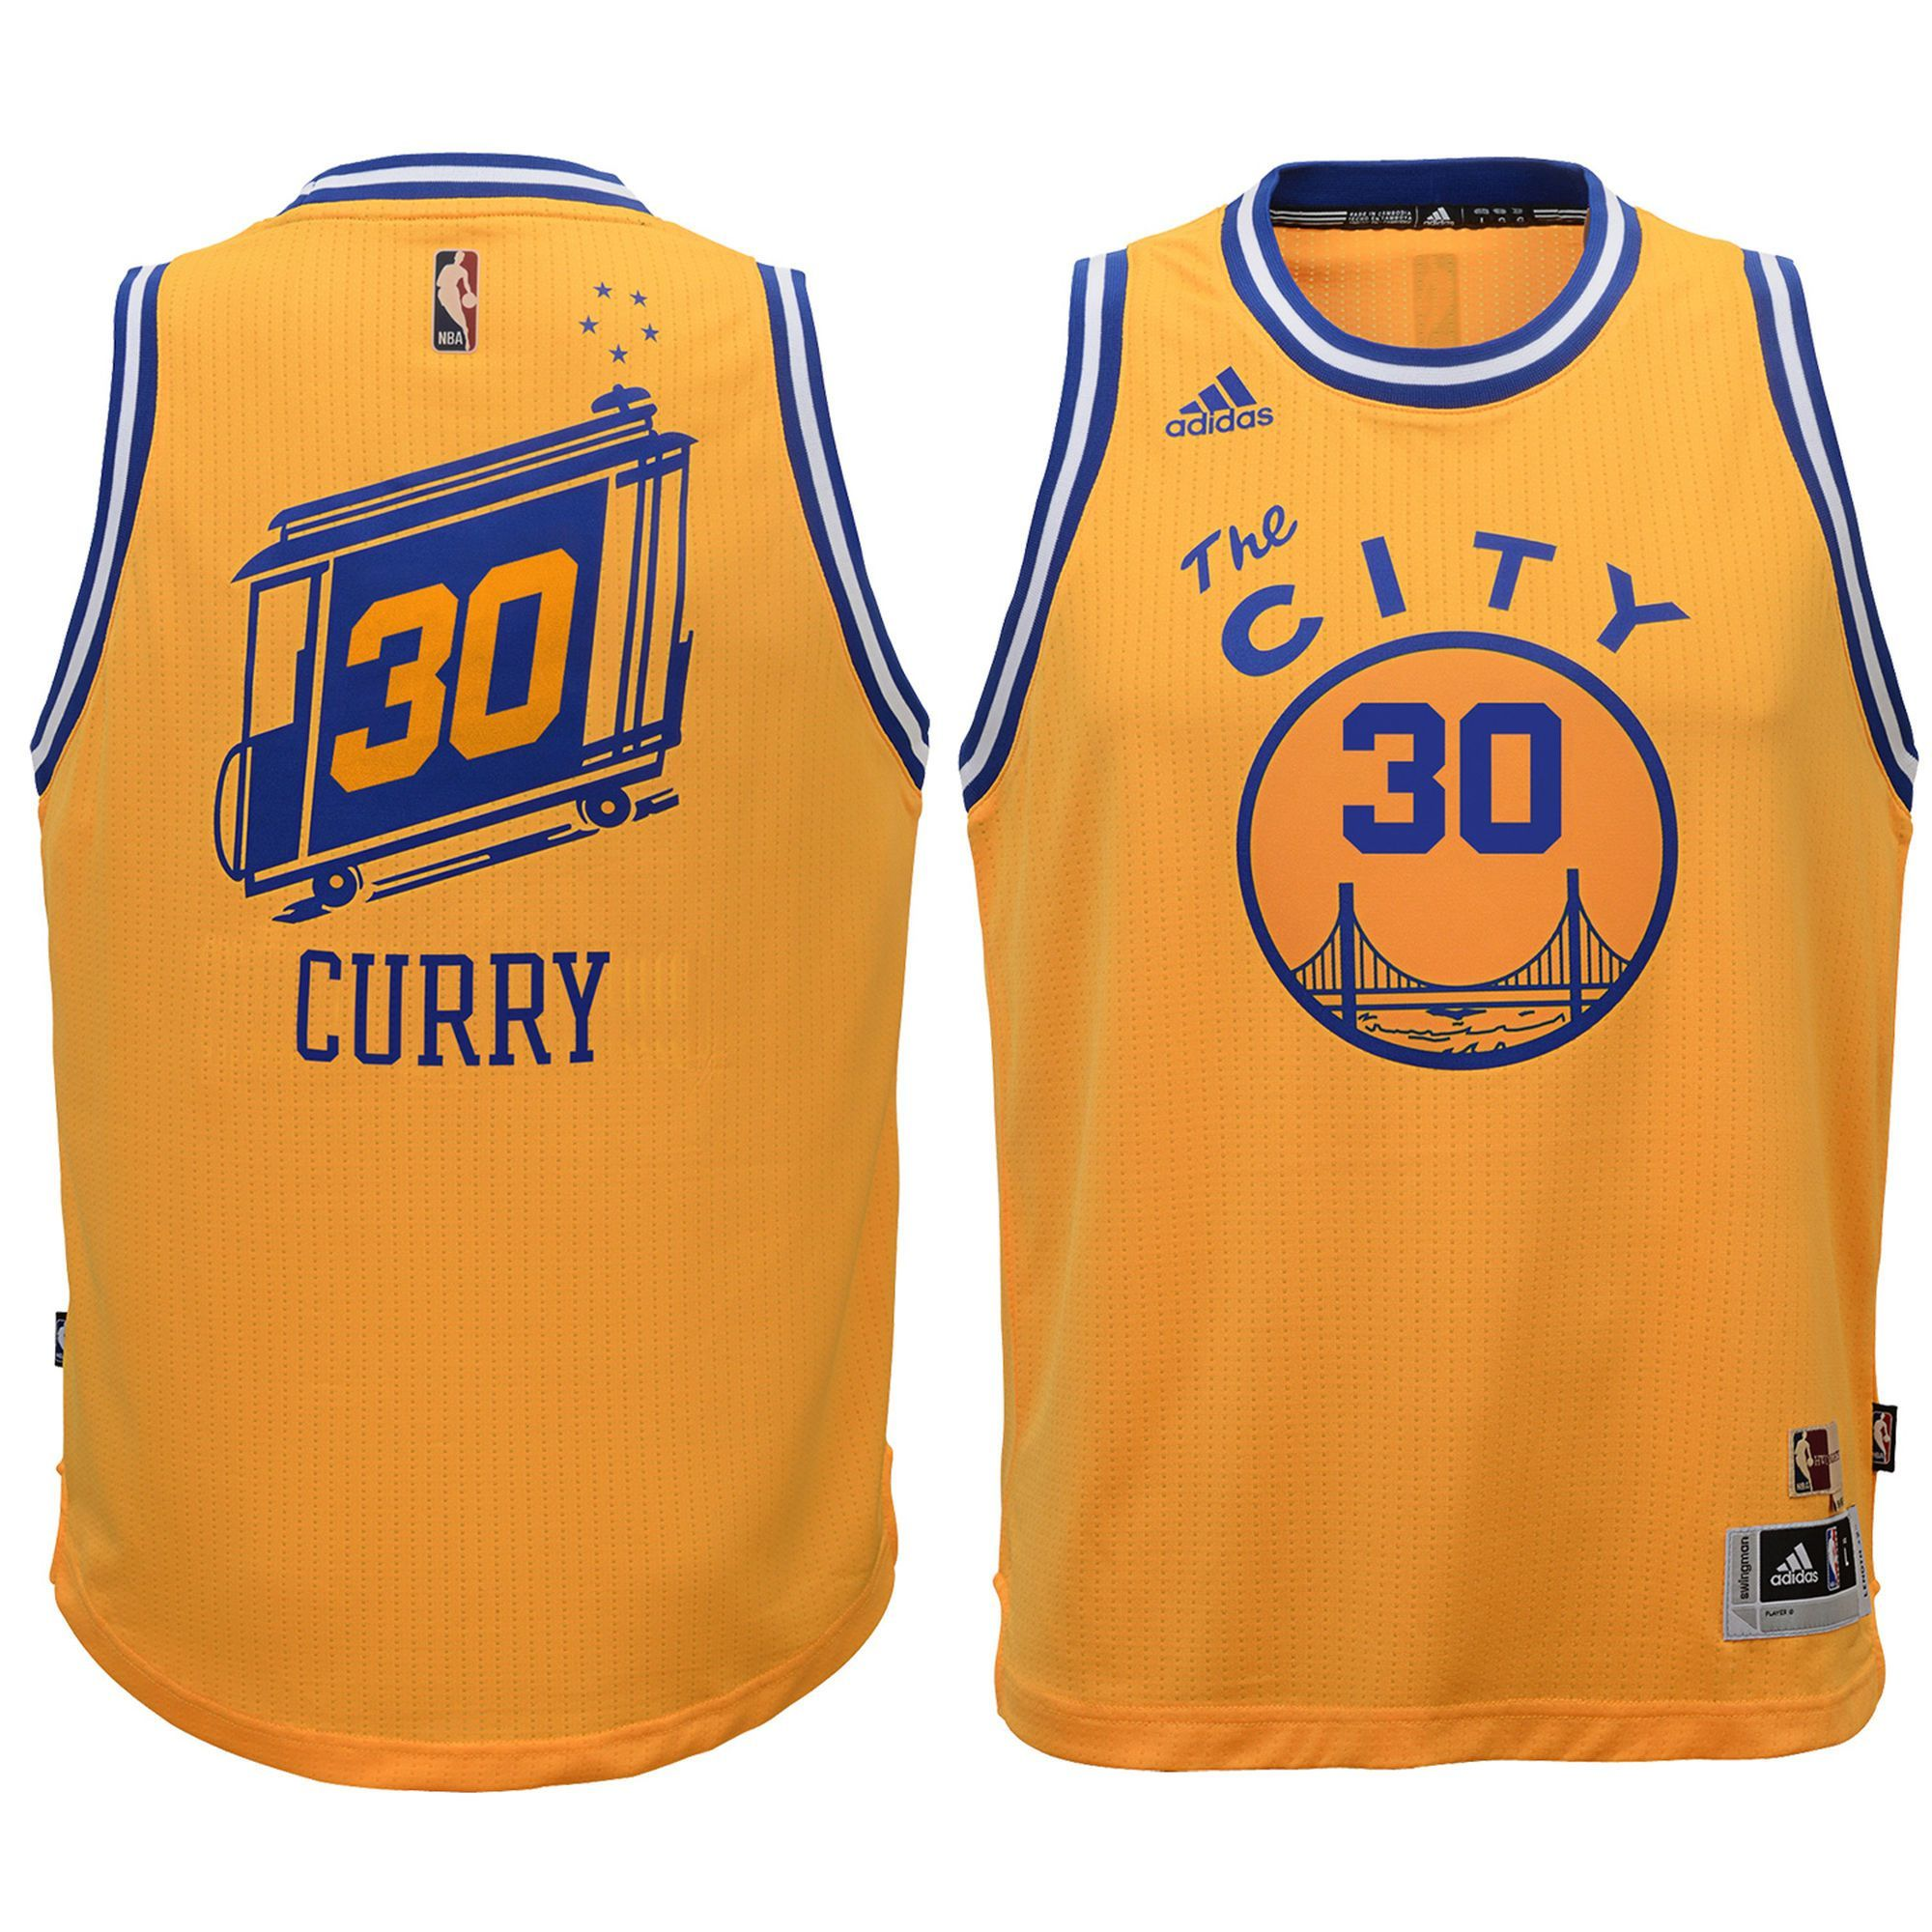 Image result for steph curry wearing hardwood classics jersey